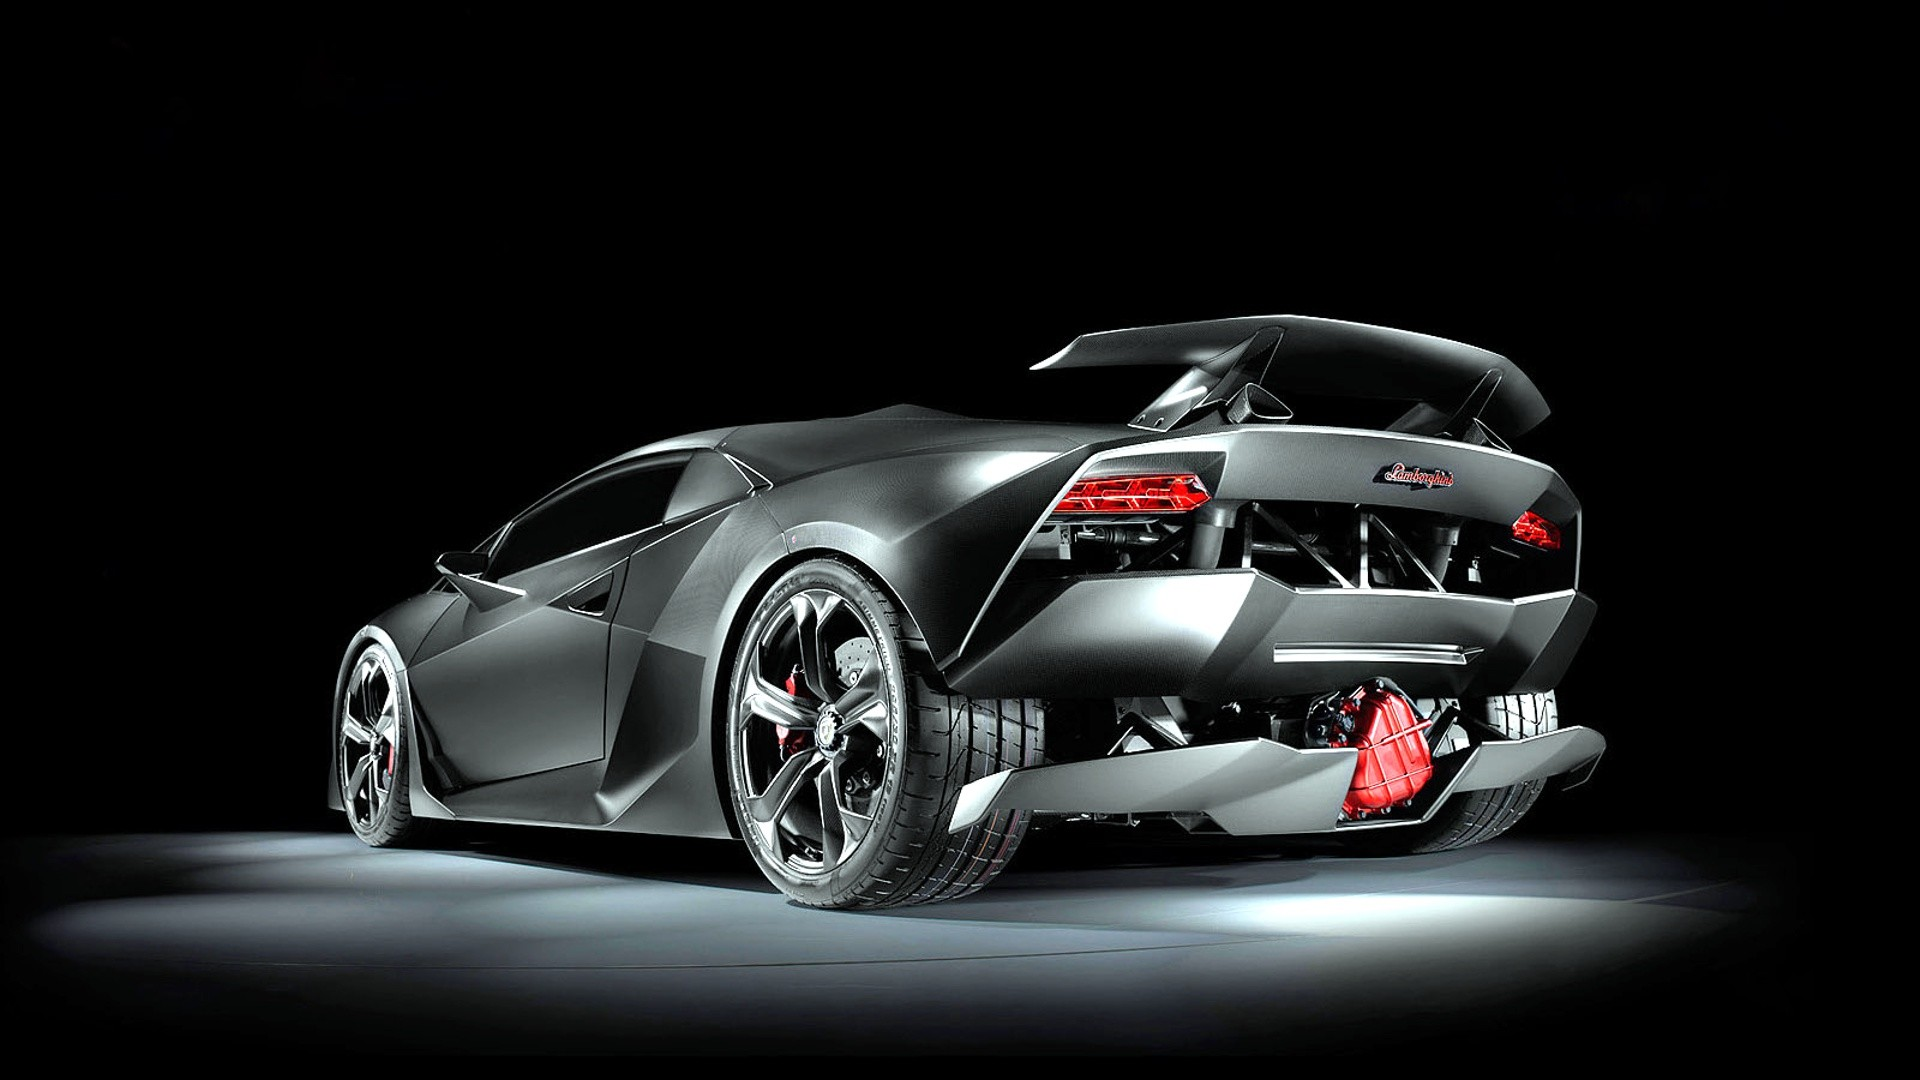 Lamborghini Sesto Elemento : Wallpaper Collection 1920x1080. 1920x1080